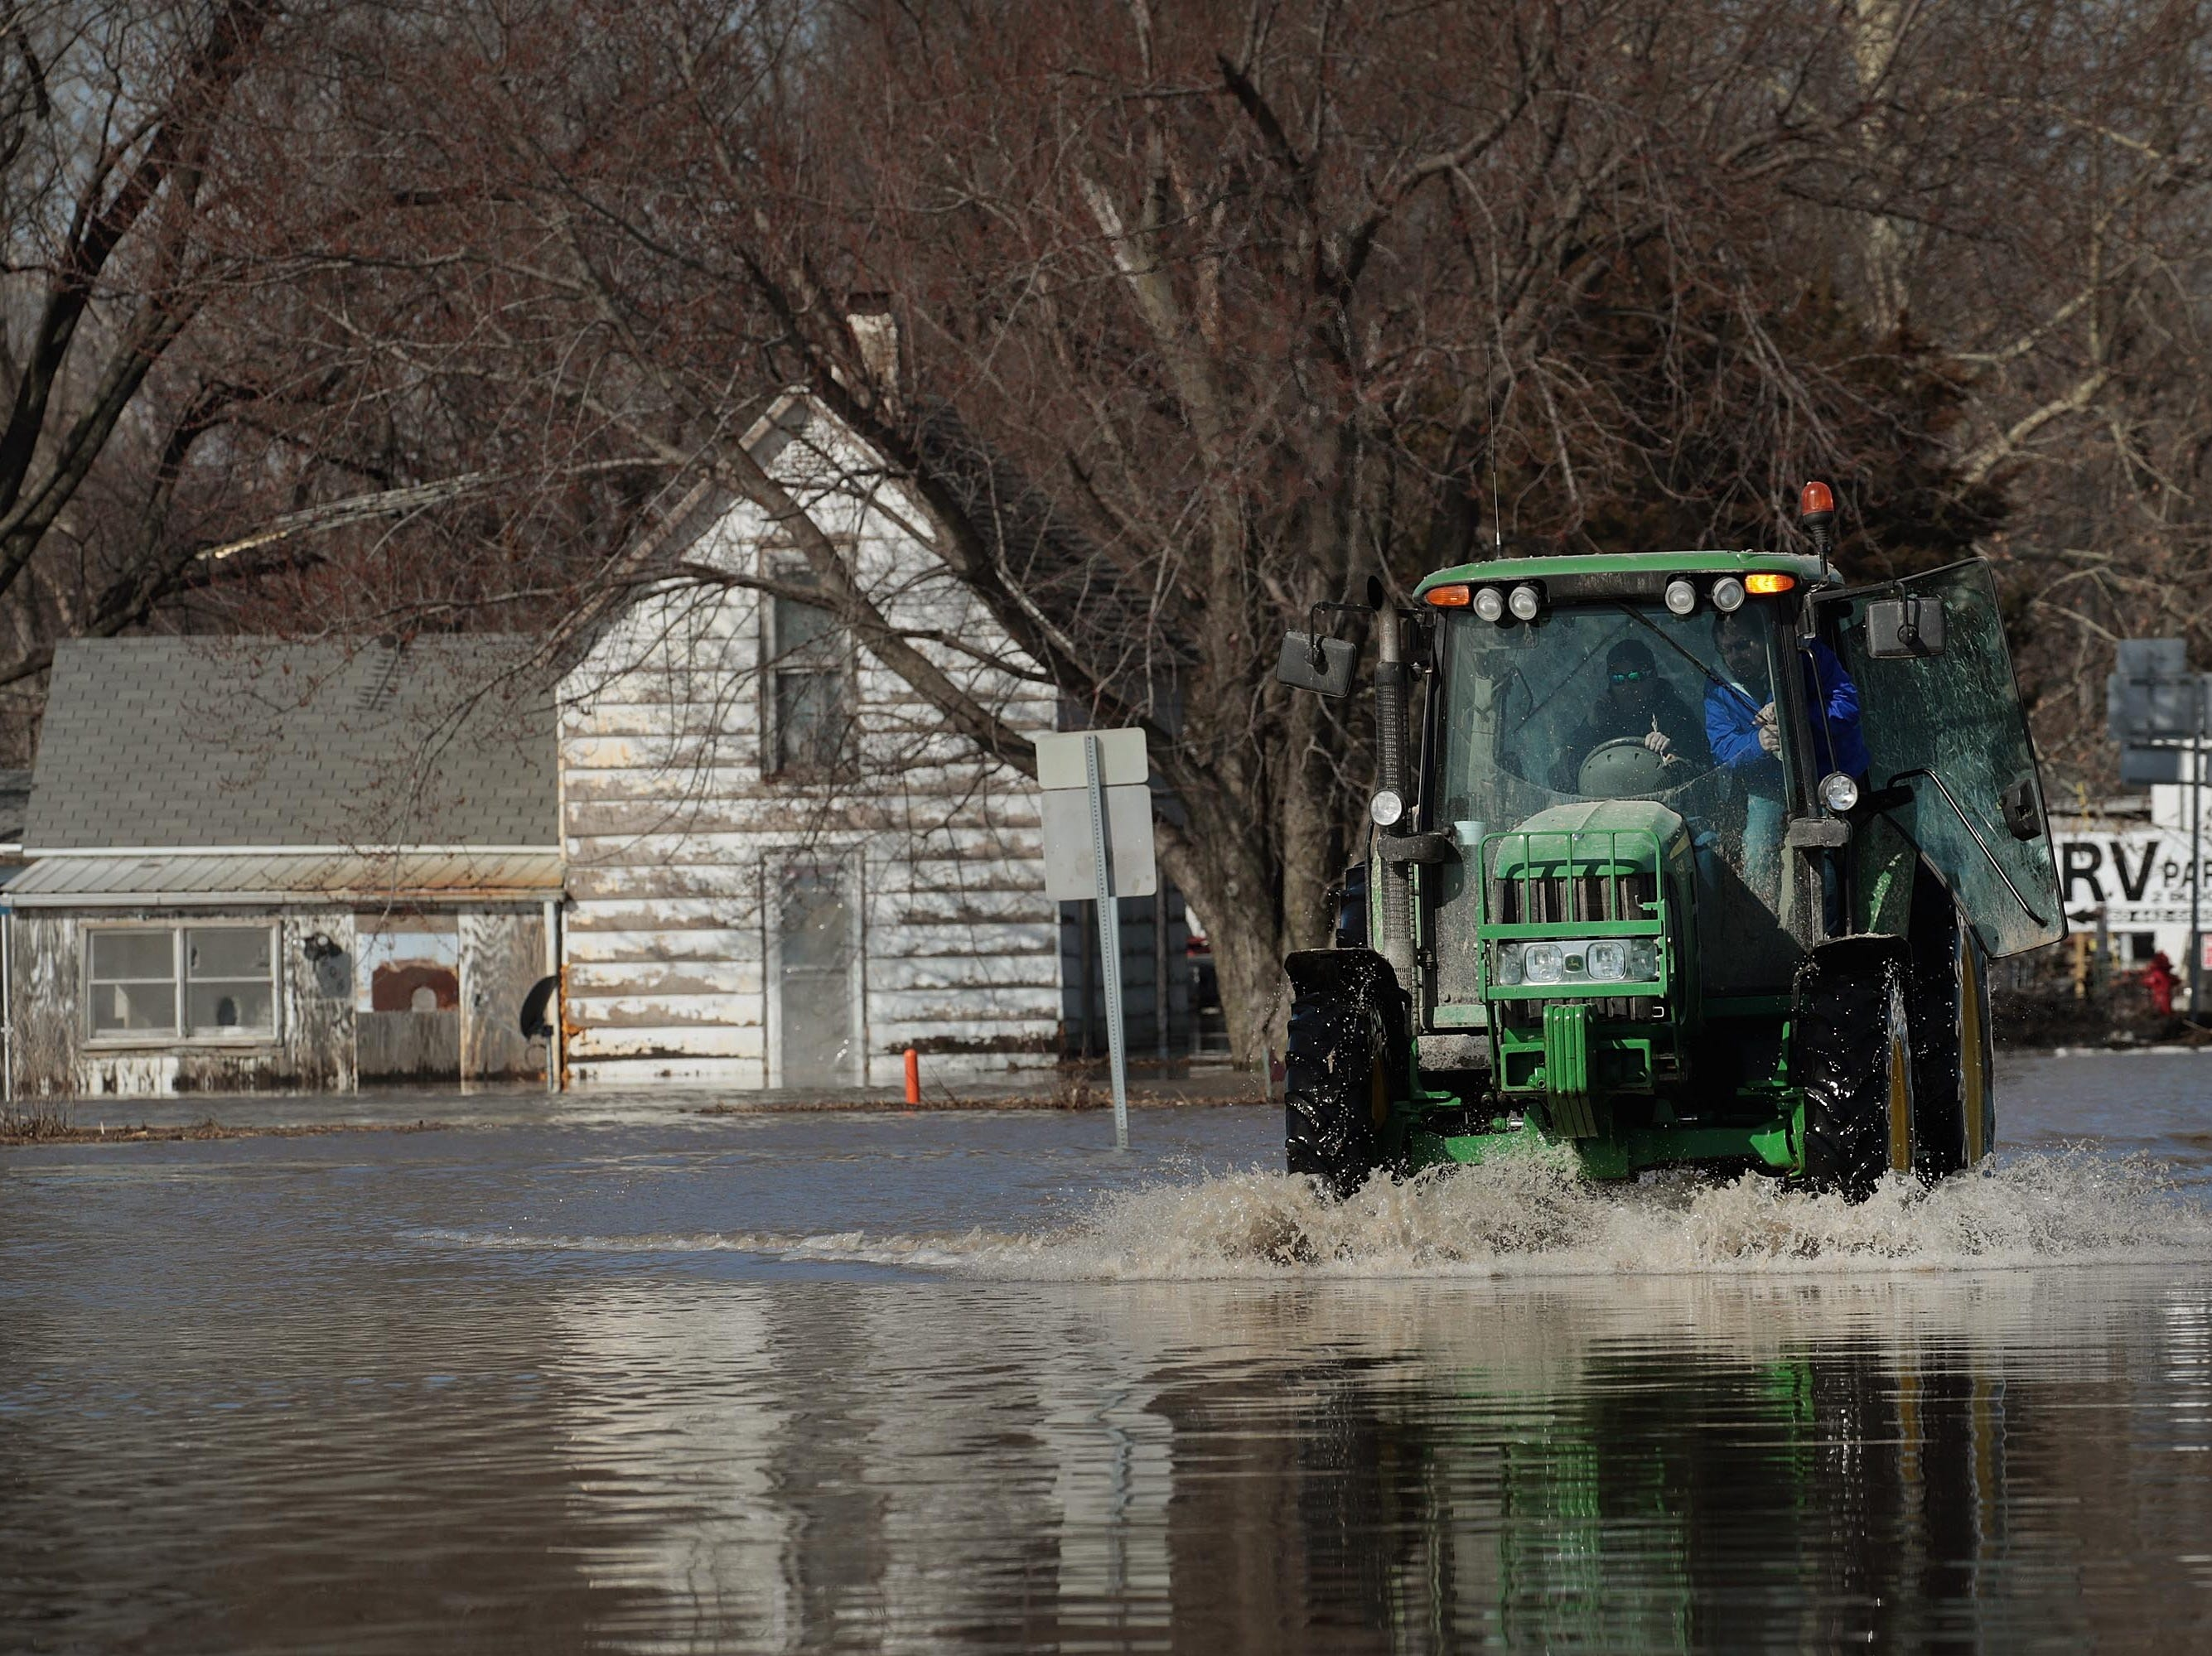 A tractor heads into town on Highway  59  on March 22, 2019 in Craig, Mo.